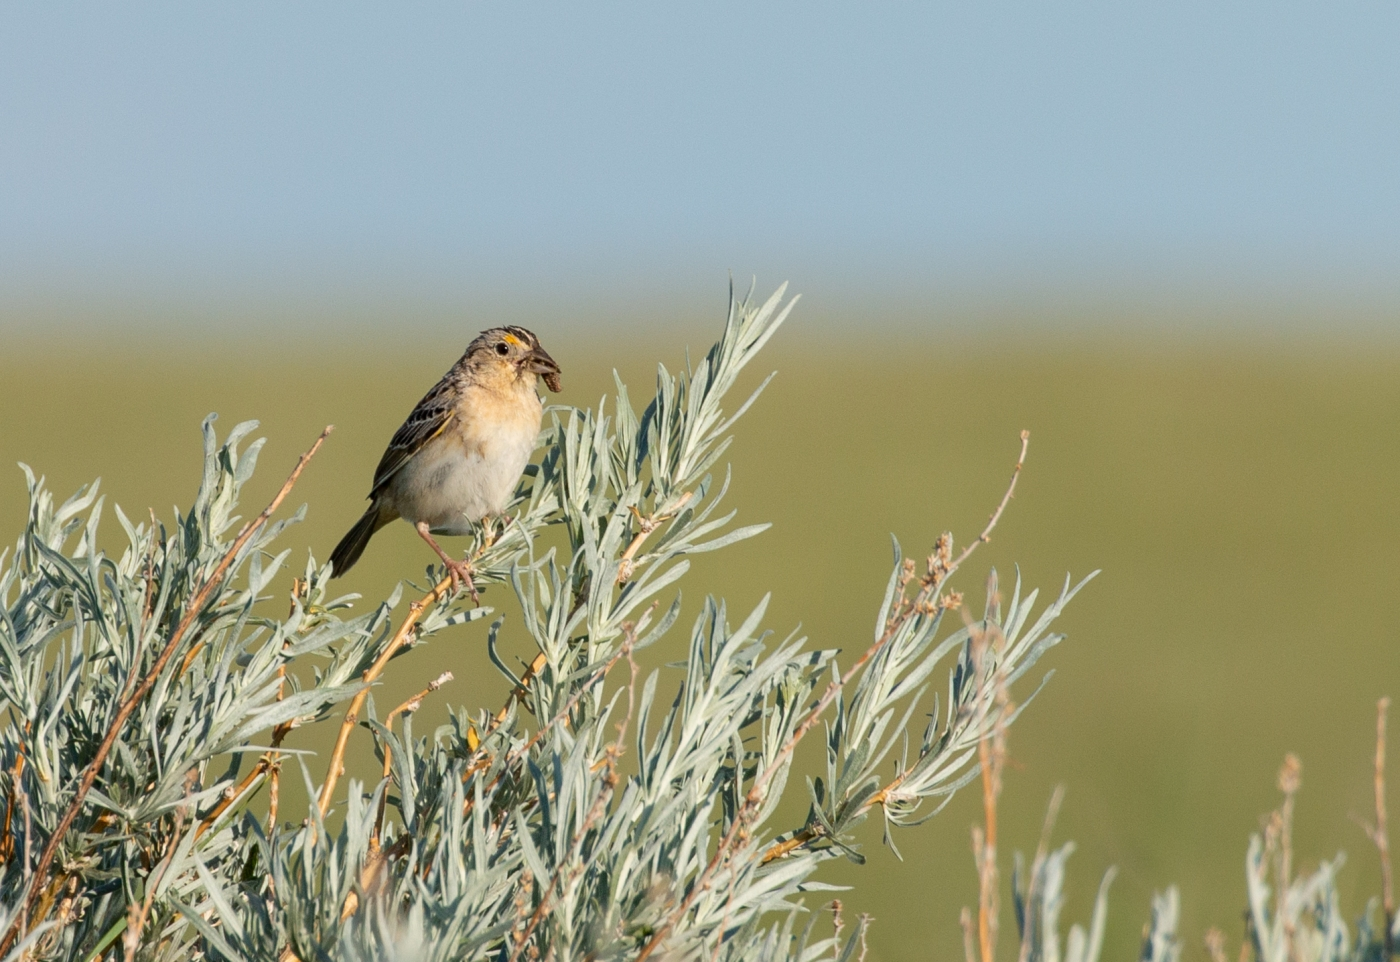 A small bird, called a grasshopper sparrow, perched on a thin branch of a leafy bush with a piece of food in its beak